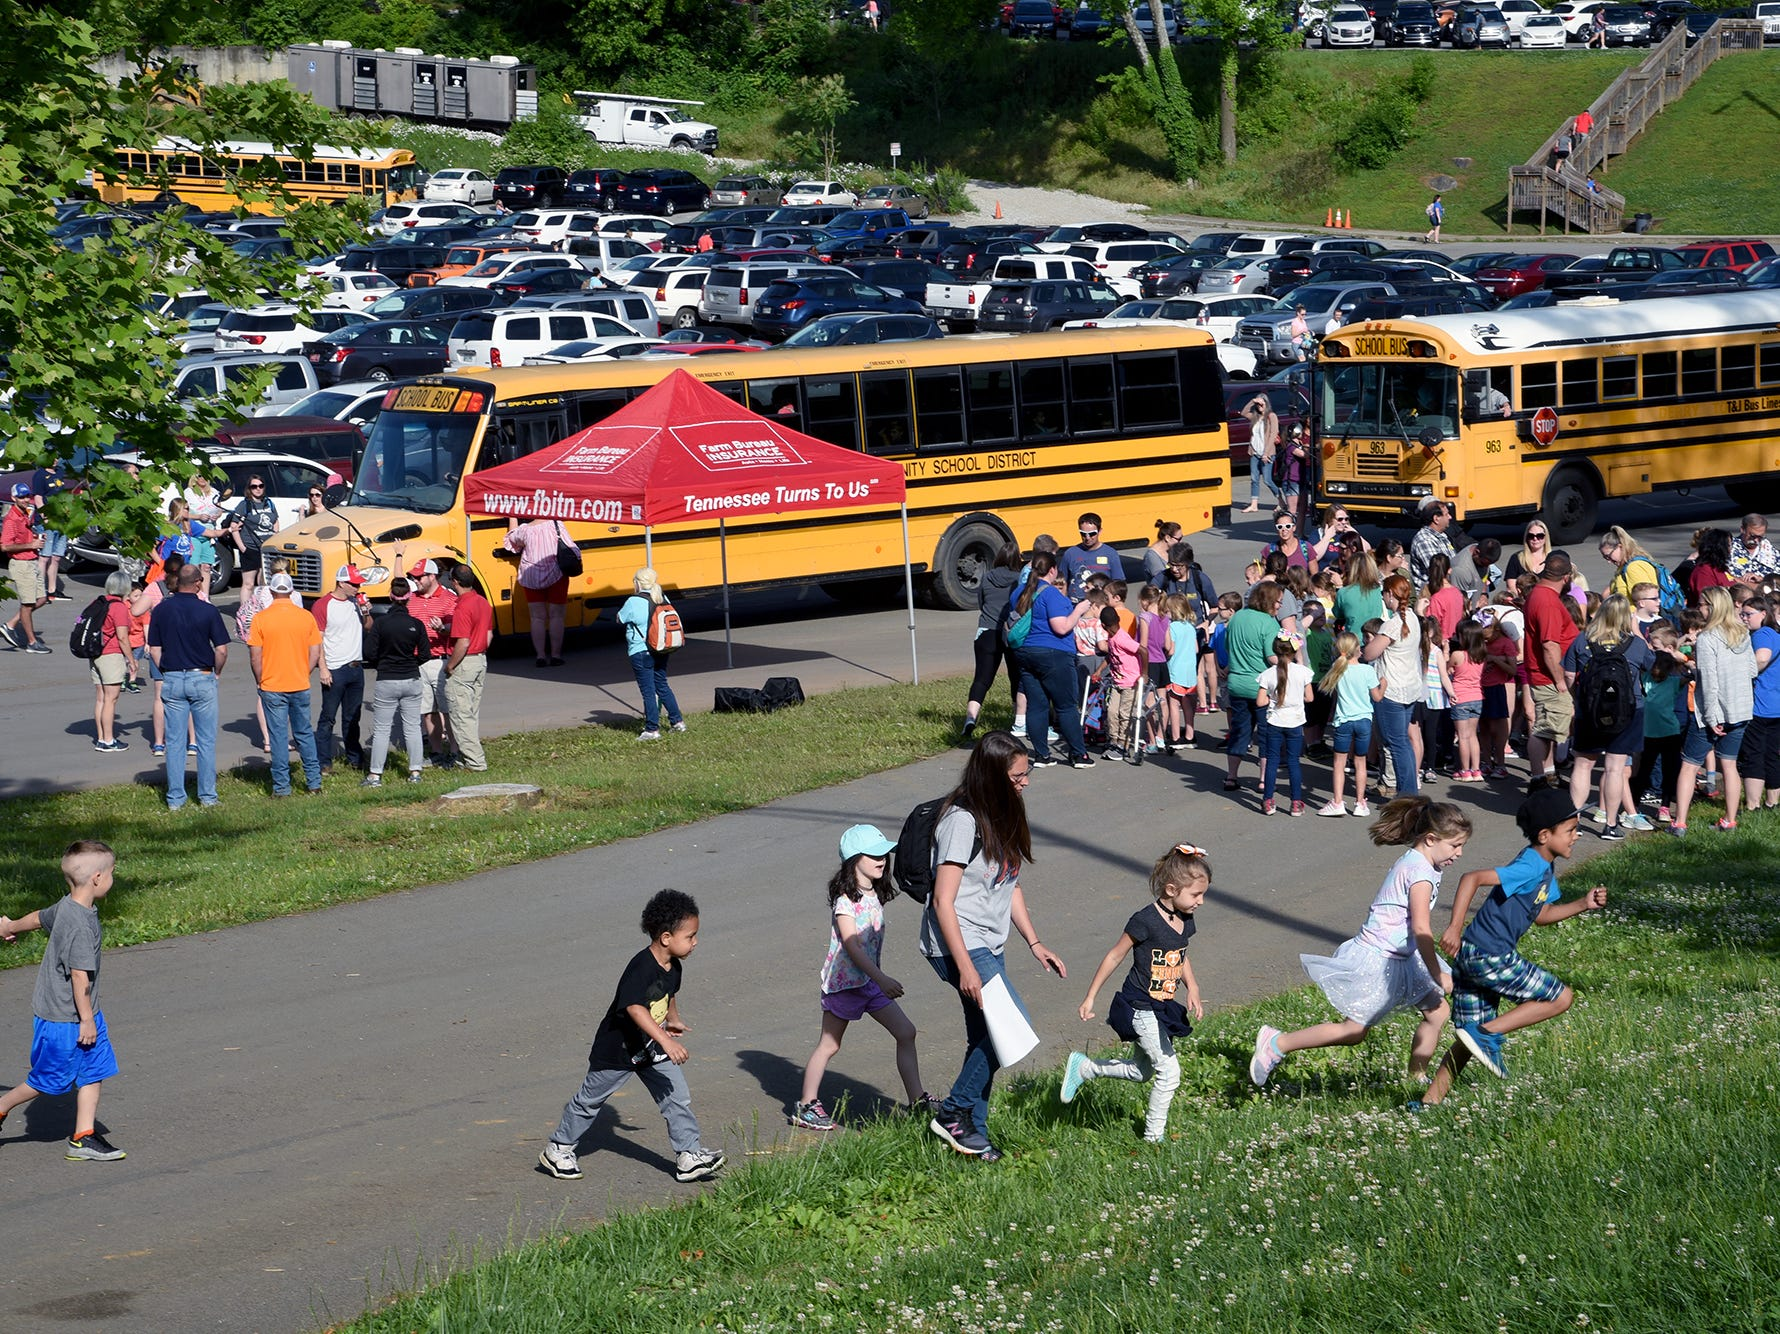 Over 600 Knox County School children attended the annual Knox County Farm Bureau Ag in the Classroom Farm Day at Chilhowee Park Tuesday, May 7, 2019.